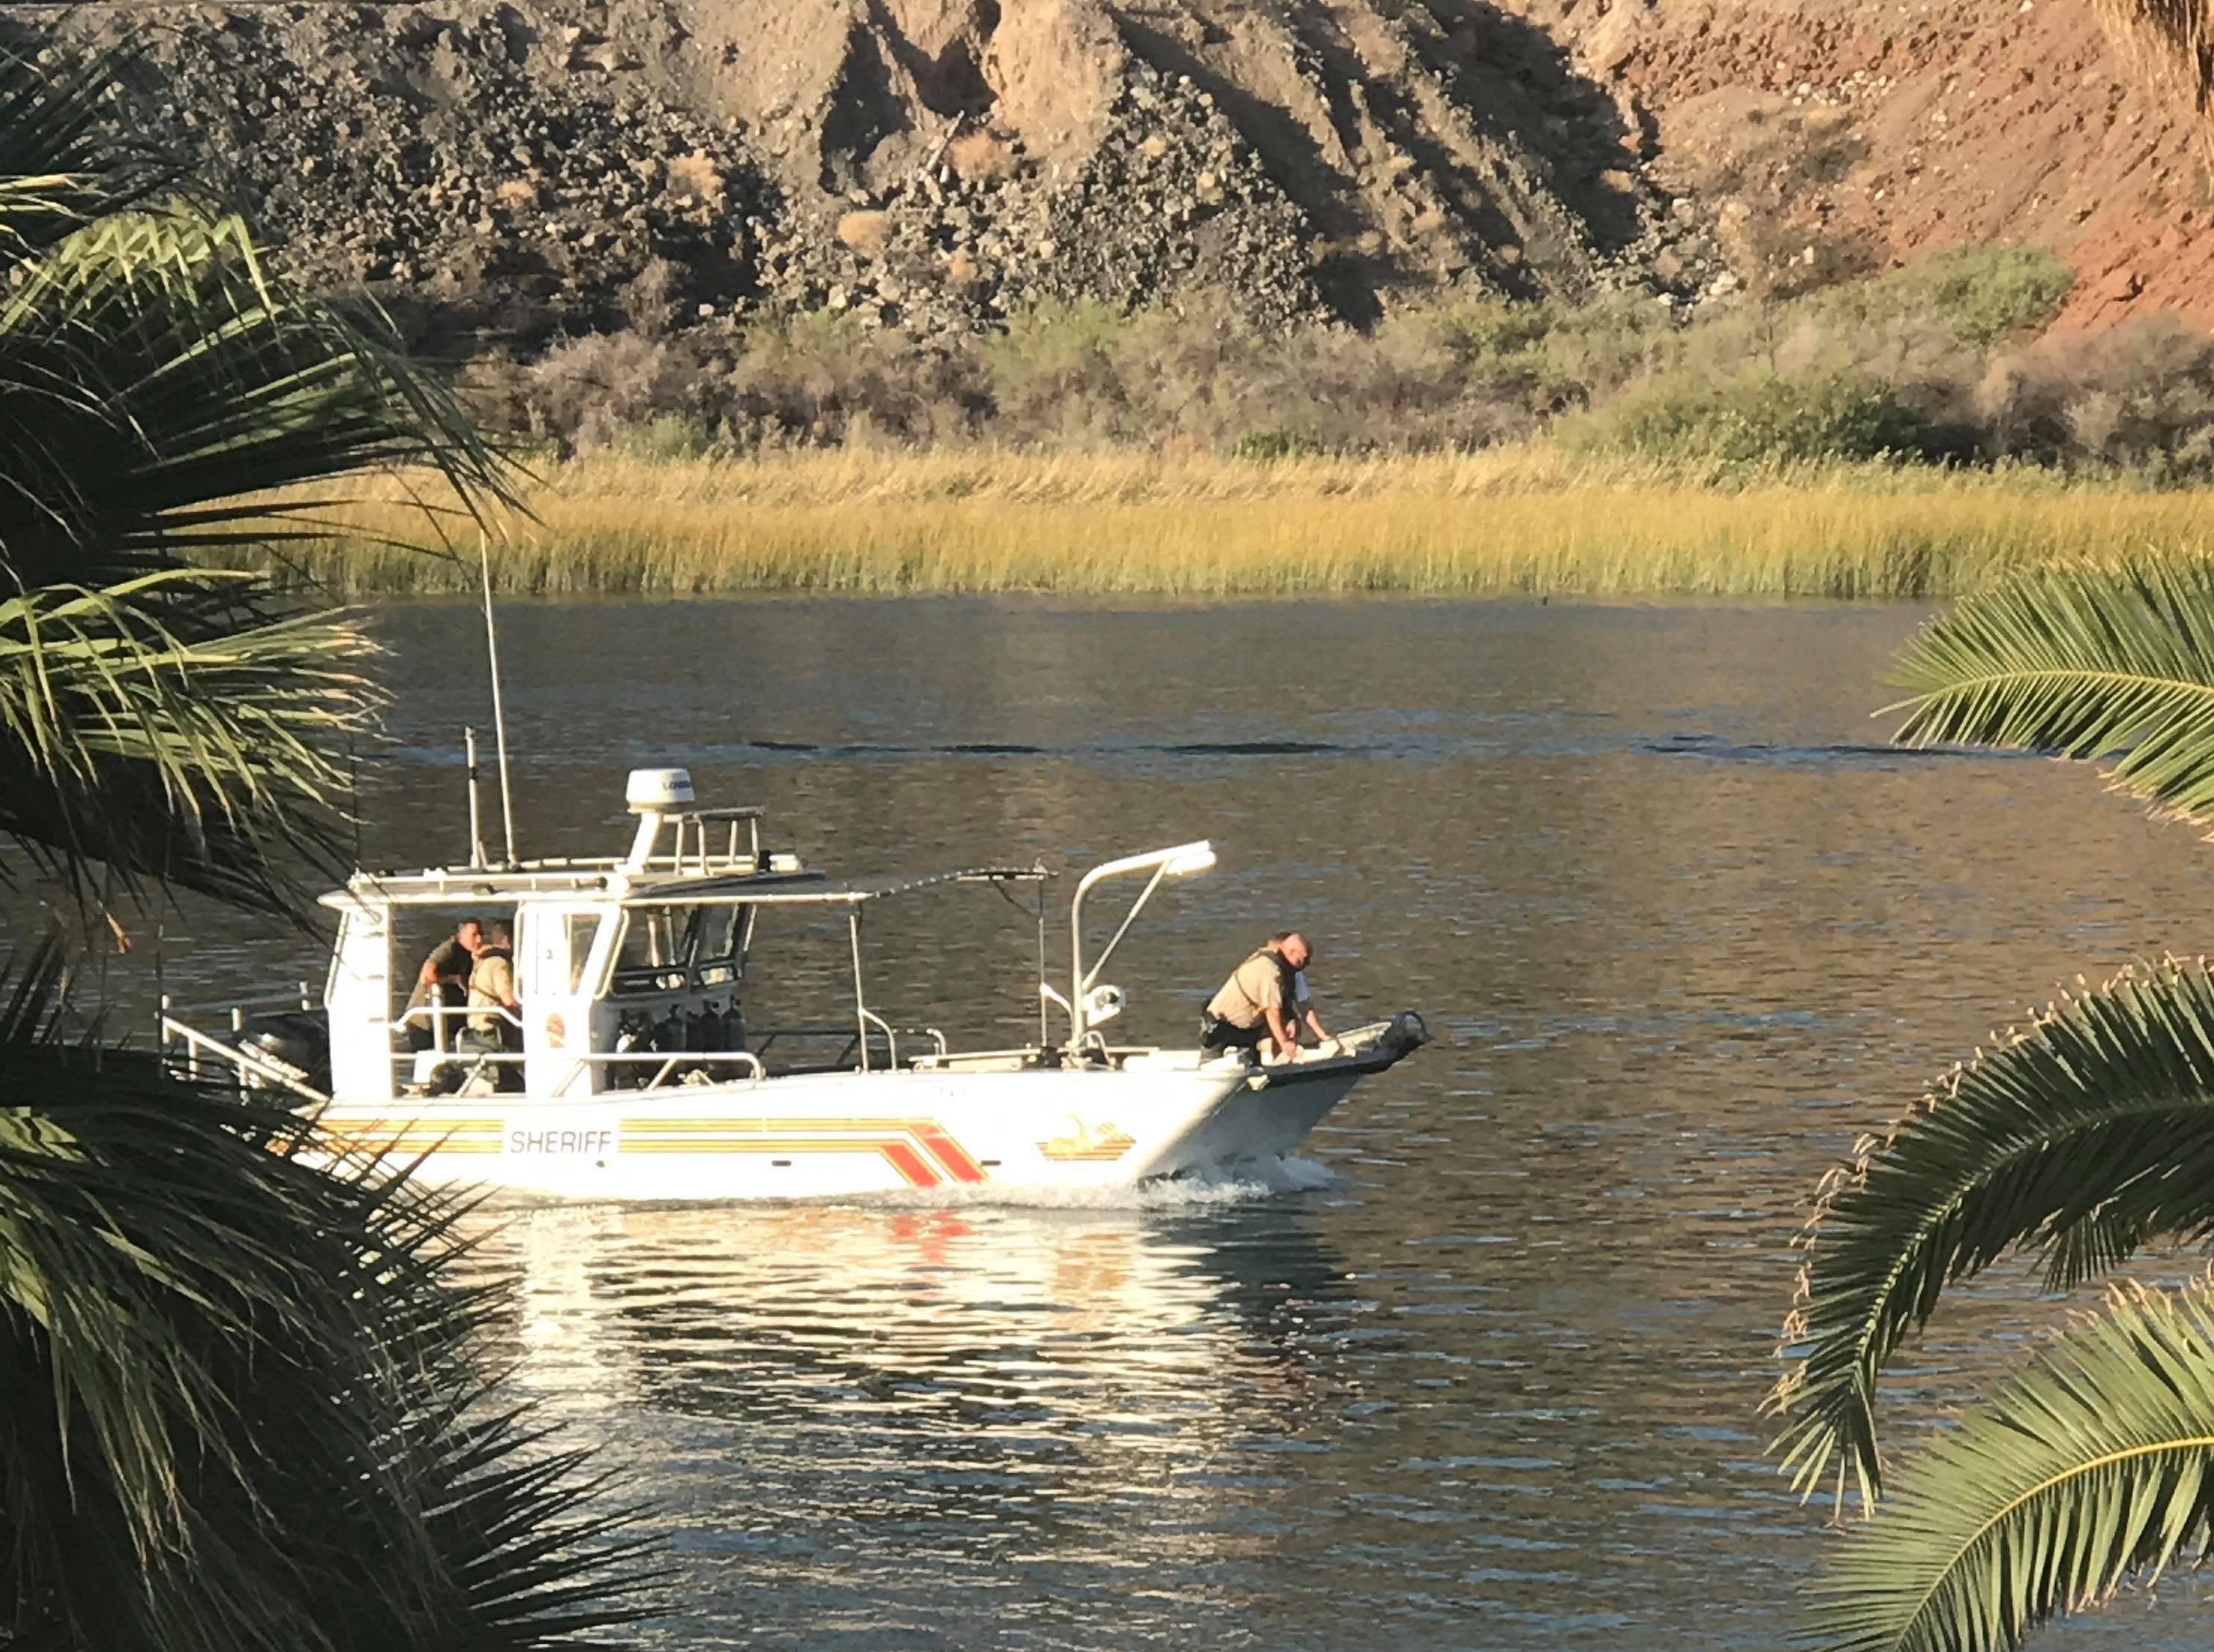 Mohave County Sheriff's Office Division of Boating Safety continues the search for missing boaters after a boat collision left nine injured, three missing and one dead on Saturday, Sept. 1, 2018.